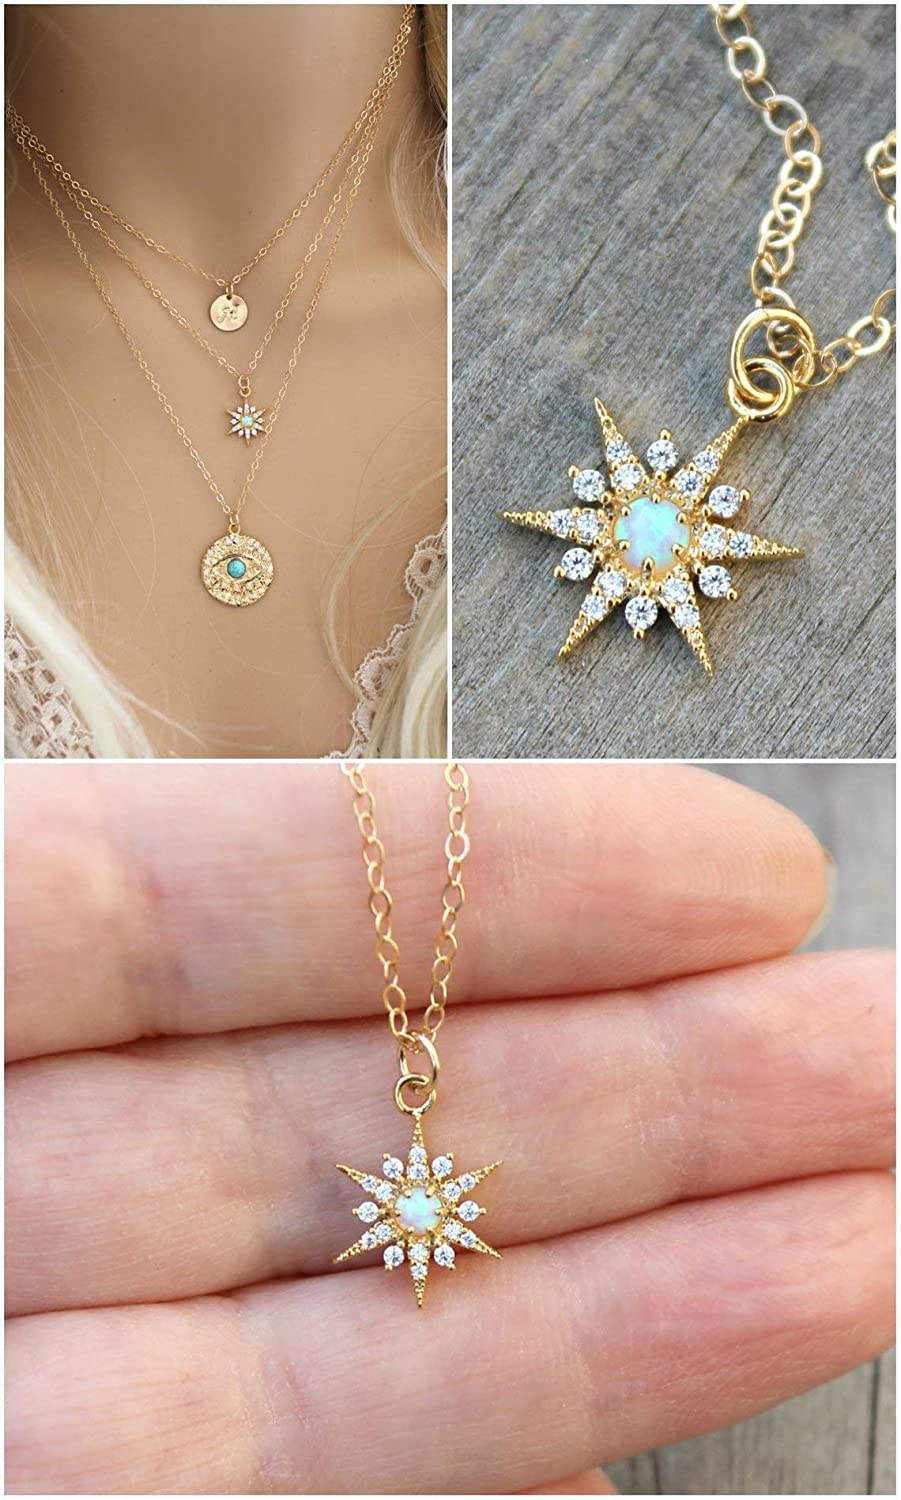 ce2e6f6745705 Amazon.com: Starburst necklace, Blue Opal, 14k gold filled chain ...